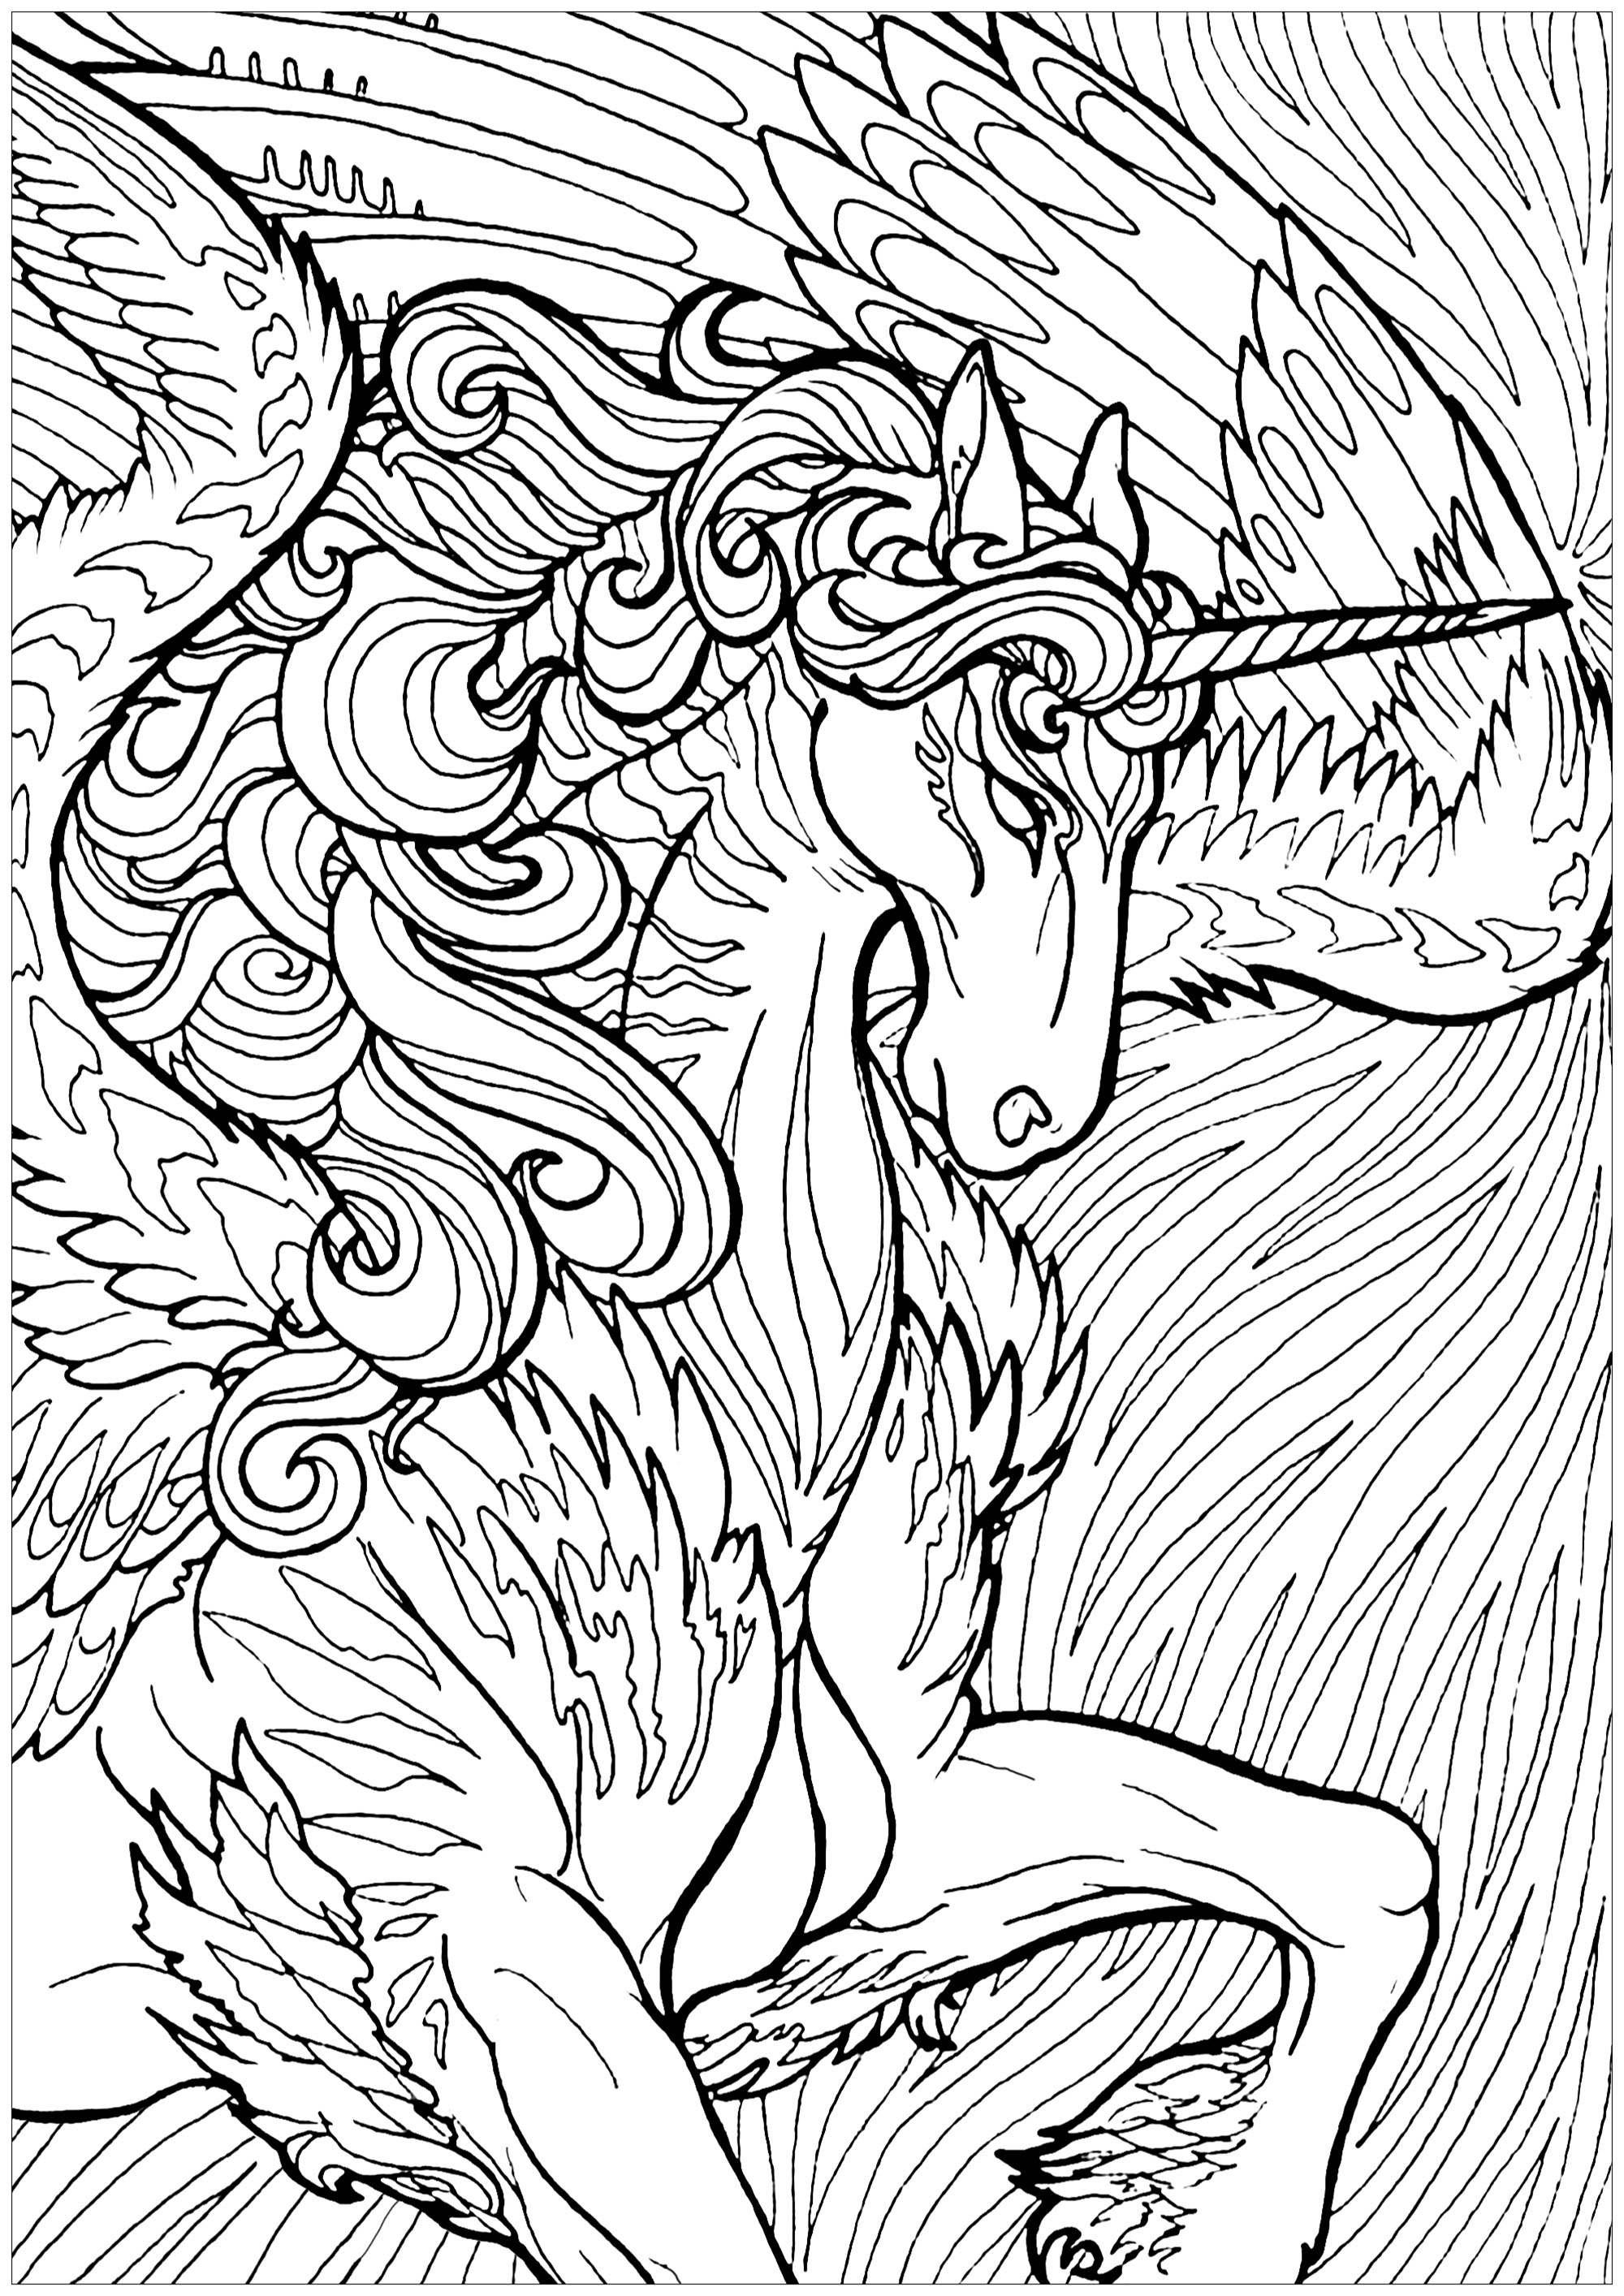 coloring pages for adults unicorn get this free printable unicorn coloring pages for adults adults unicorn for pages coloring